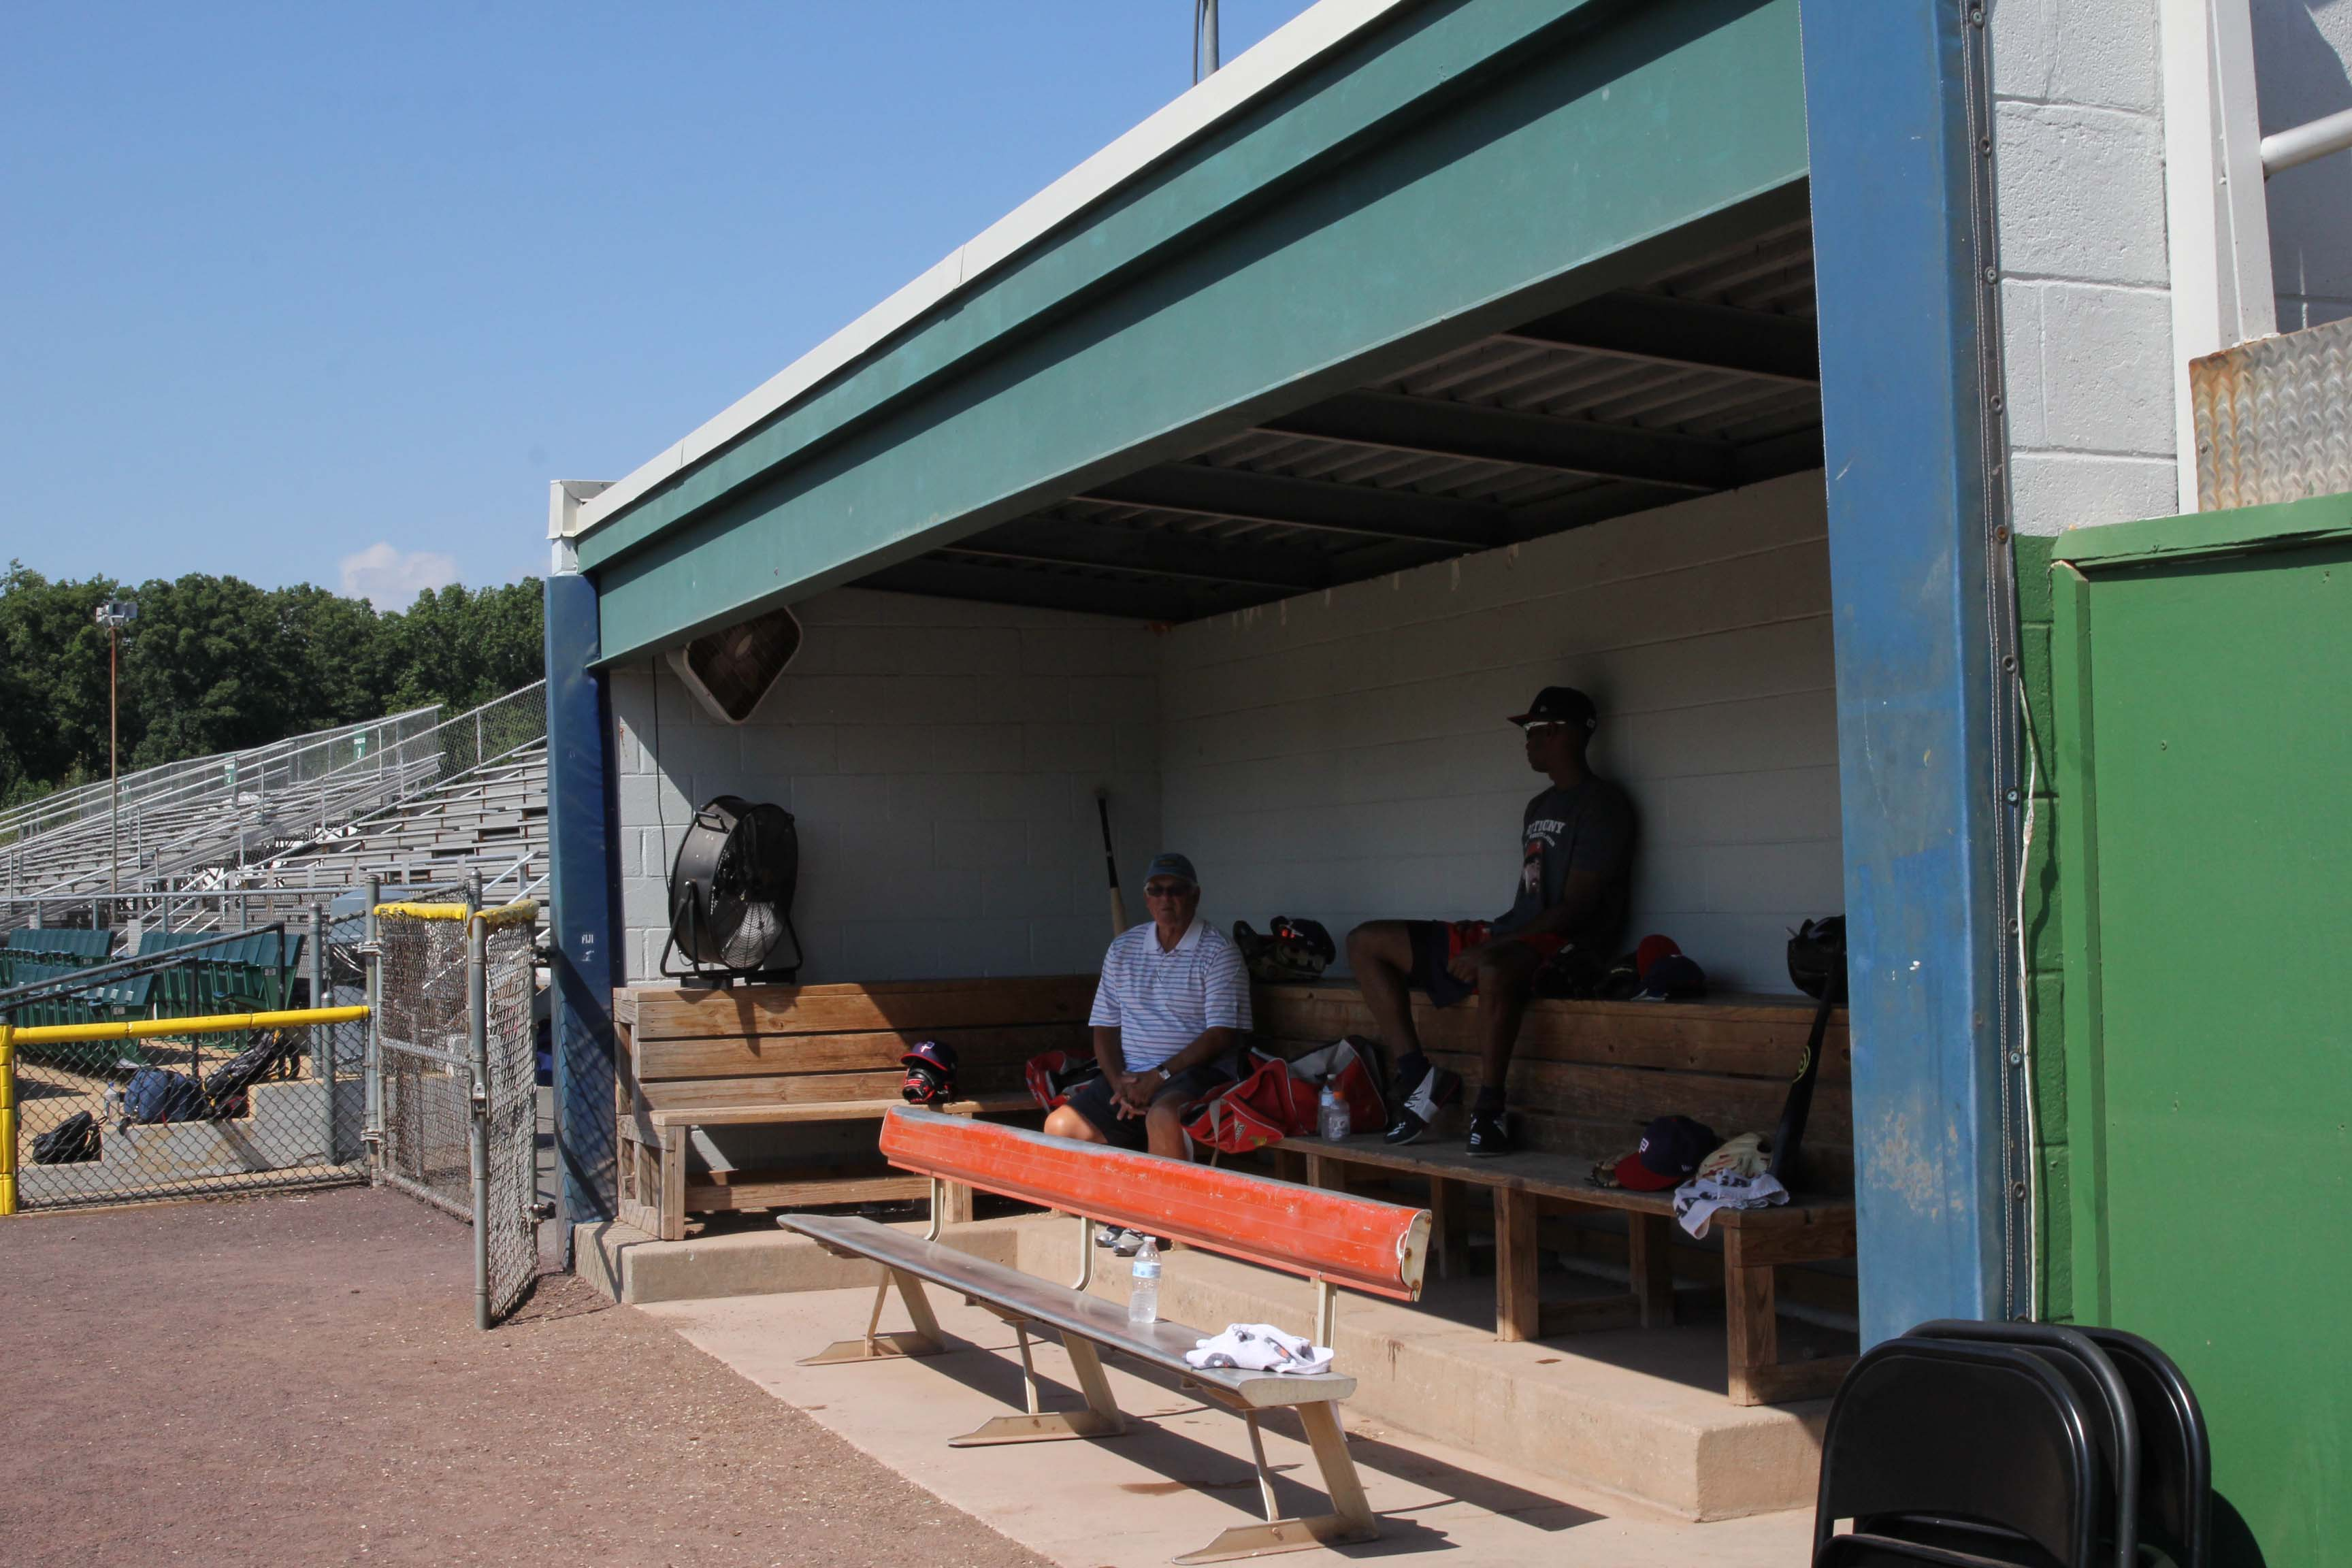 Pfitzner Stadium has small dugouts for both the home and visiting teams. (MEDILL/Jenna West)